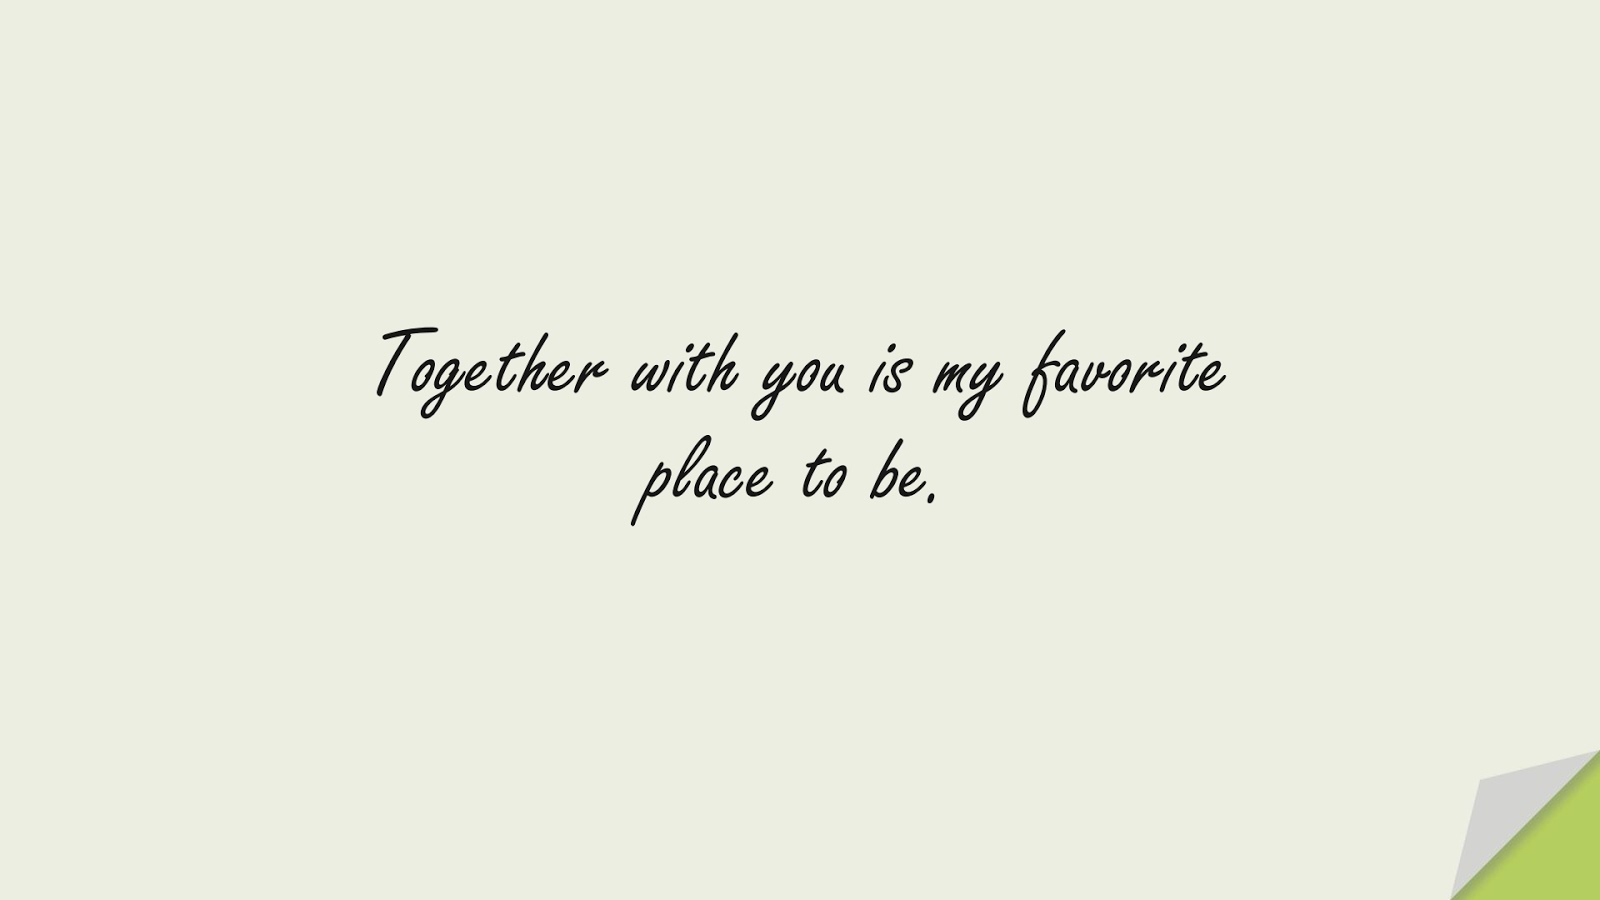 Together with you is my favorite place to be.FALSE